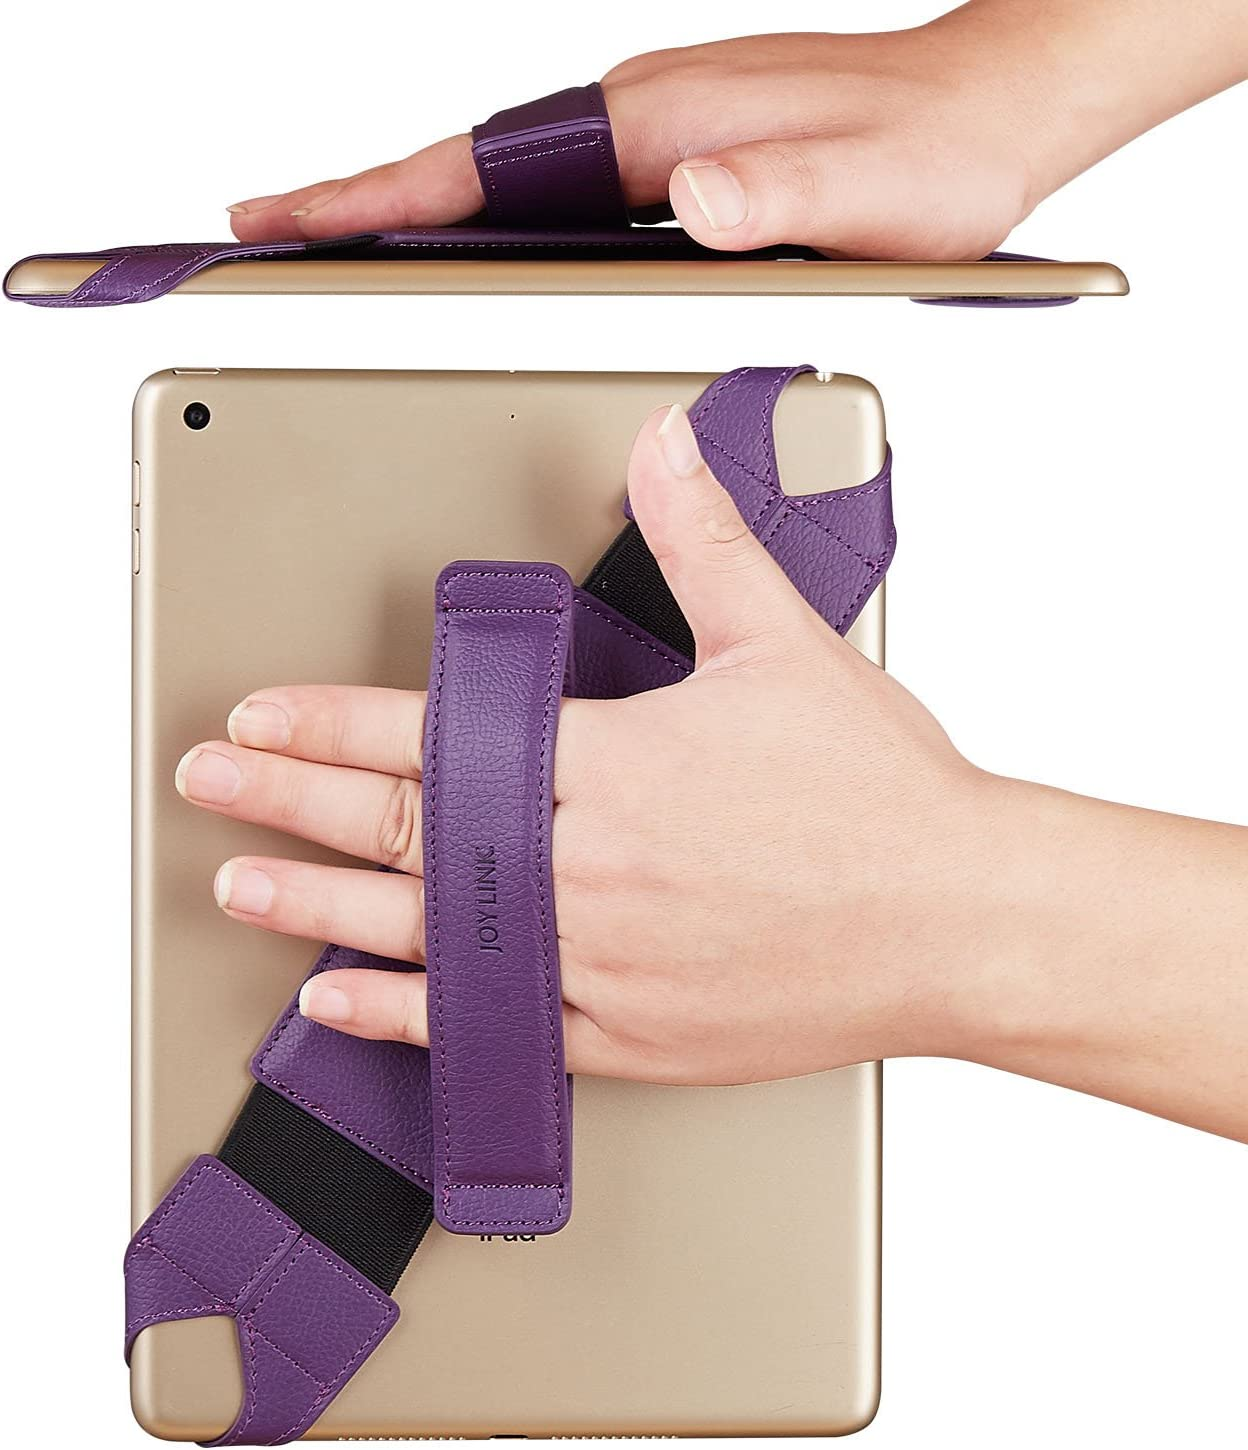 "Universal Tablet Hand Strap Holder, Joylink 360 Degrees Swivel Leather Handle Grip with Elastic Belt, Secure & Portable for Almost 10.1"" Tablets (Samsung Asus Acer Google Lenovo Kindle iPad), Purple"